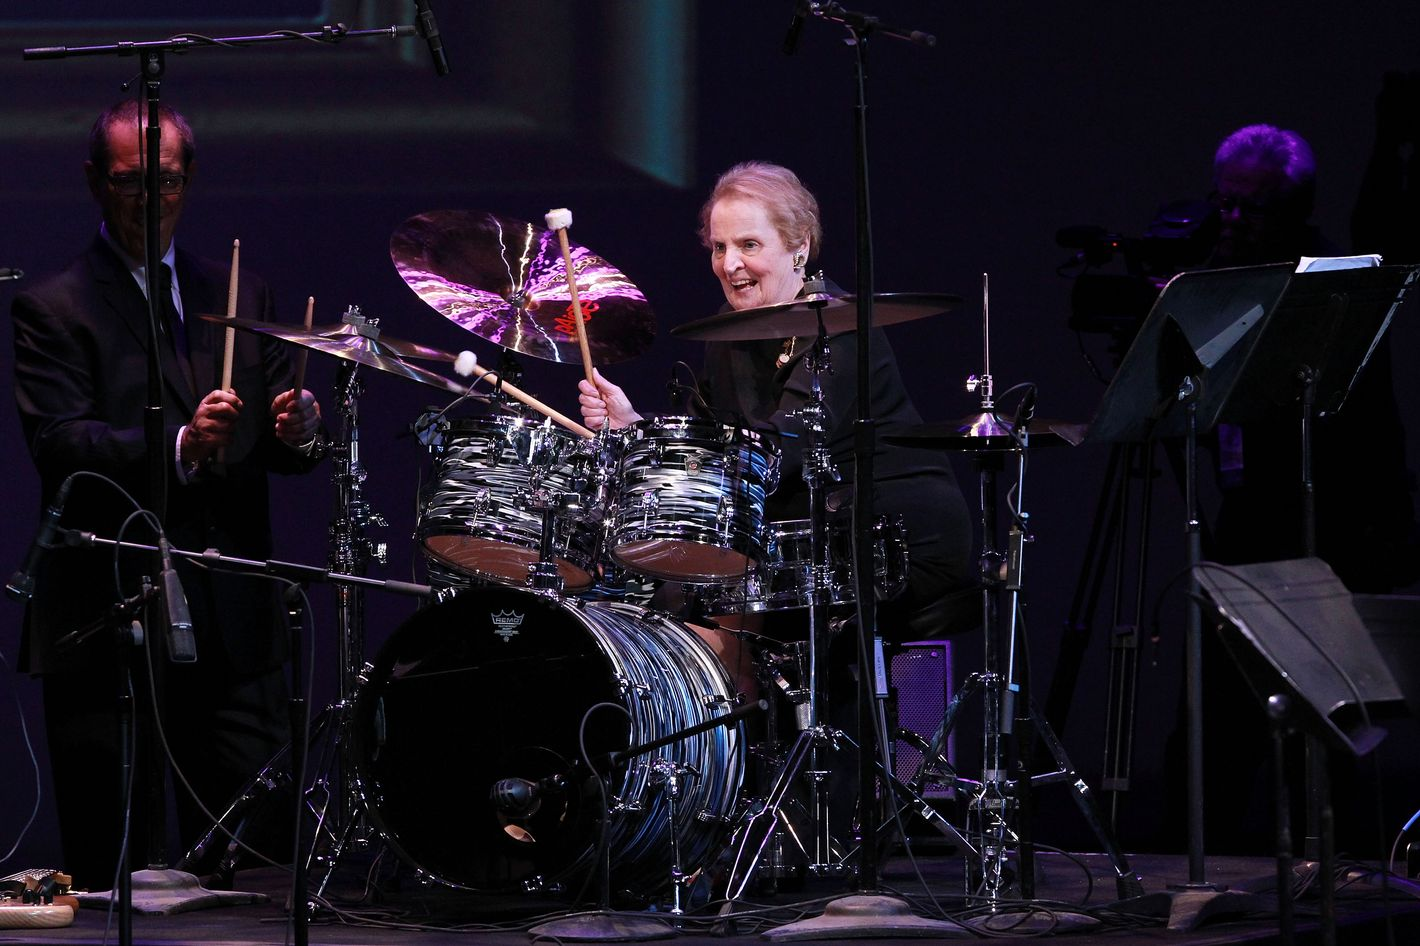 WASHINGTON, DC - SEPTEMBER 23:  Honoree and former U.S. Secretary of State Madeleine Albright peforms at the Thelonious Monk International Jazz Drums Competition and Gala Concert at The Kennedy Center on September 23, 2012 in Washington, DC.  (Photo by Paul Morigi/Getty Images for The Thelonious Monk Institute of Jazz)